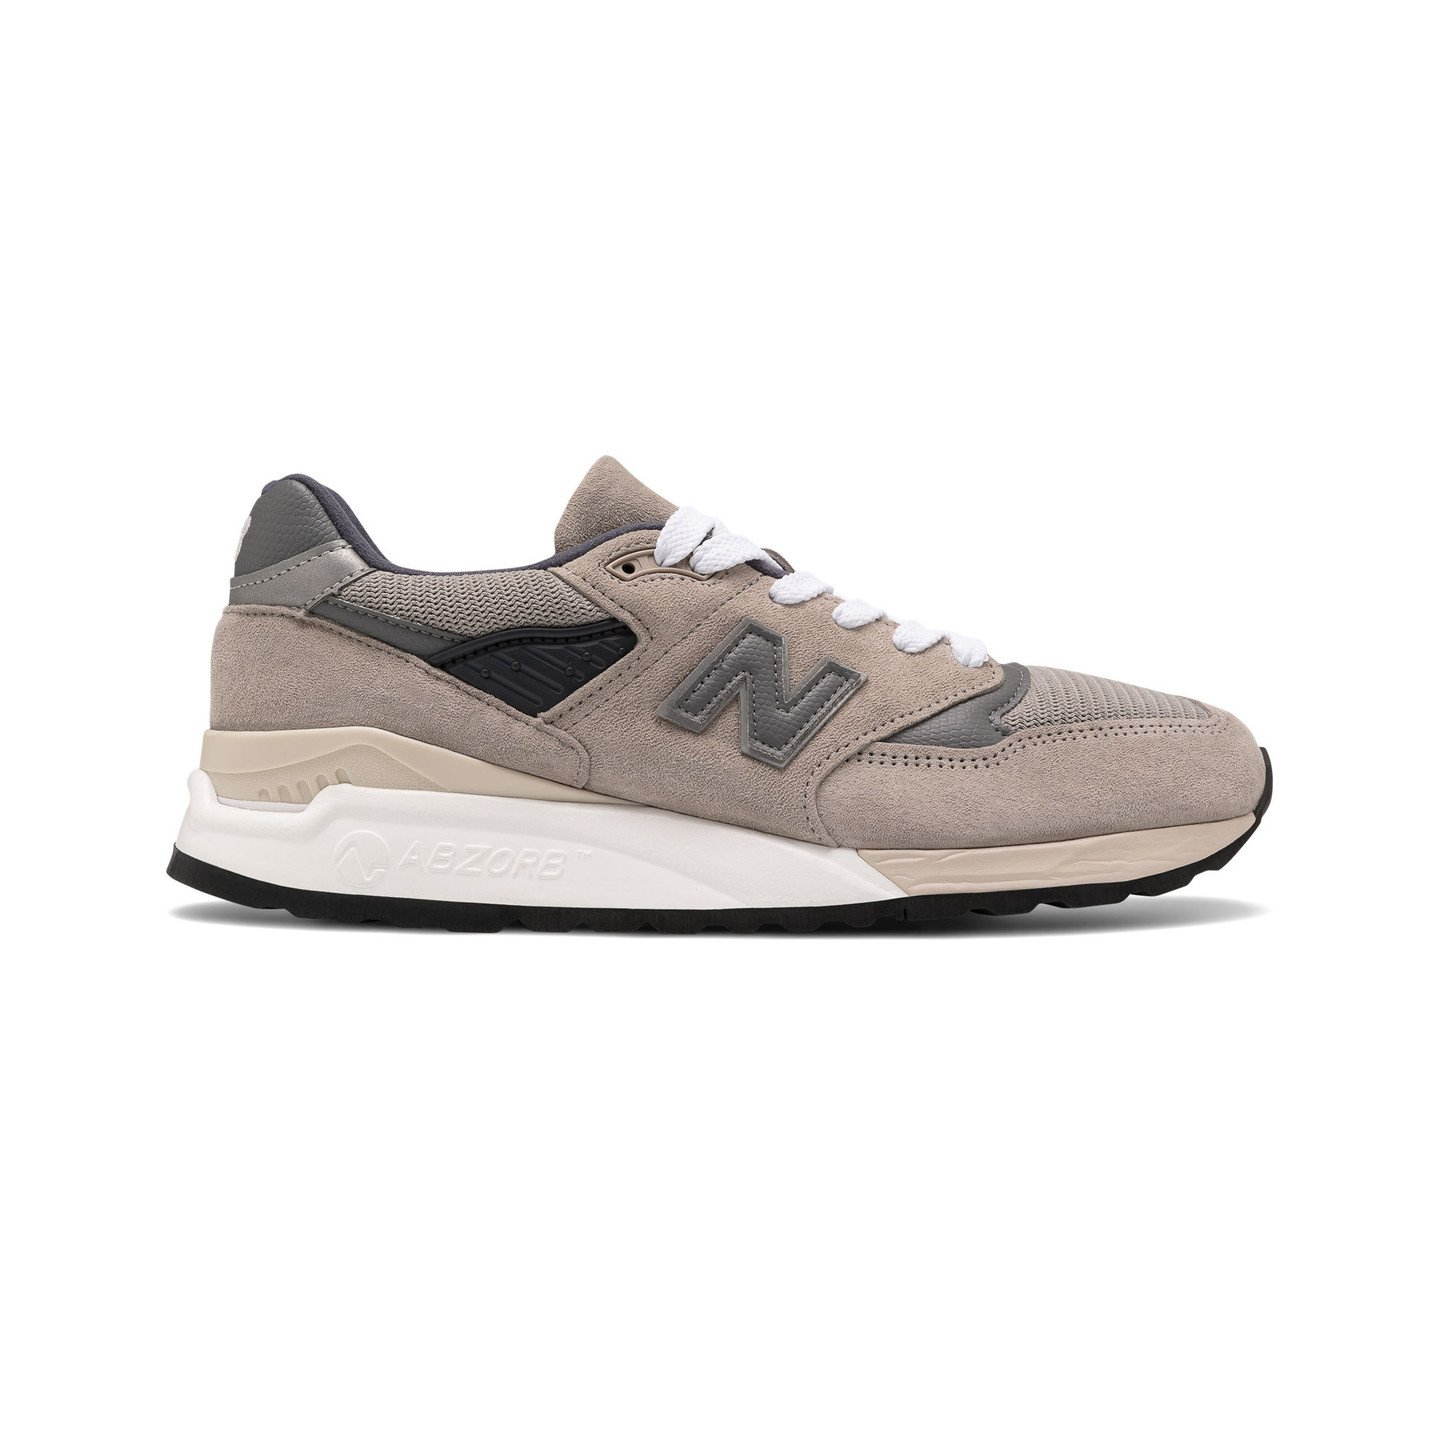 New Balance M998 - Made in USA Grey / Light Grey M998BLA